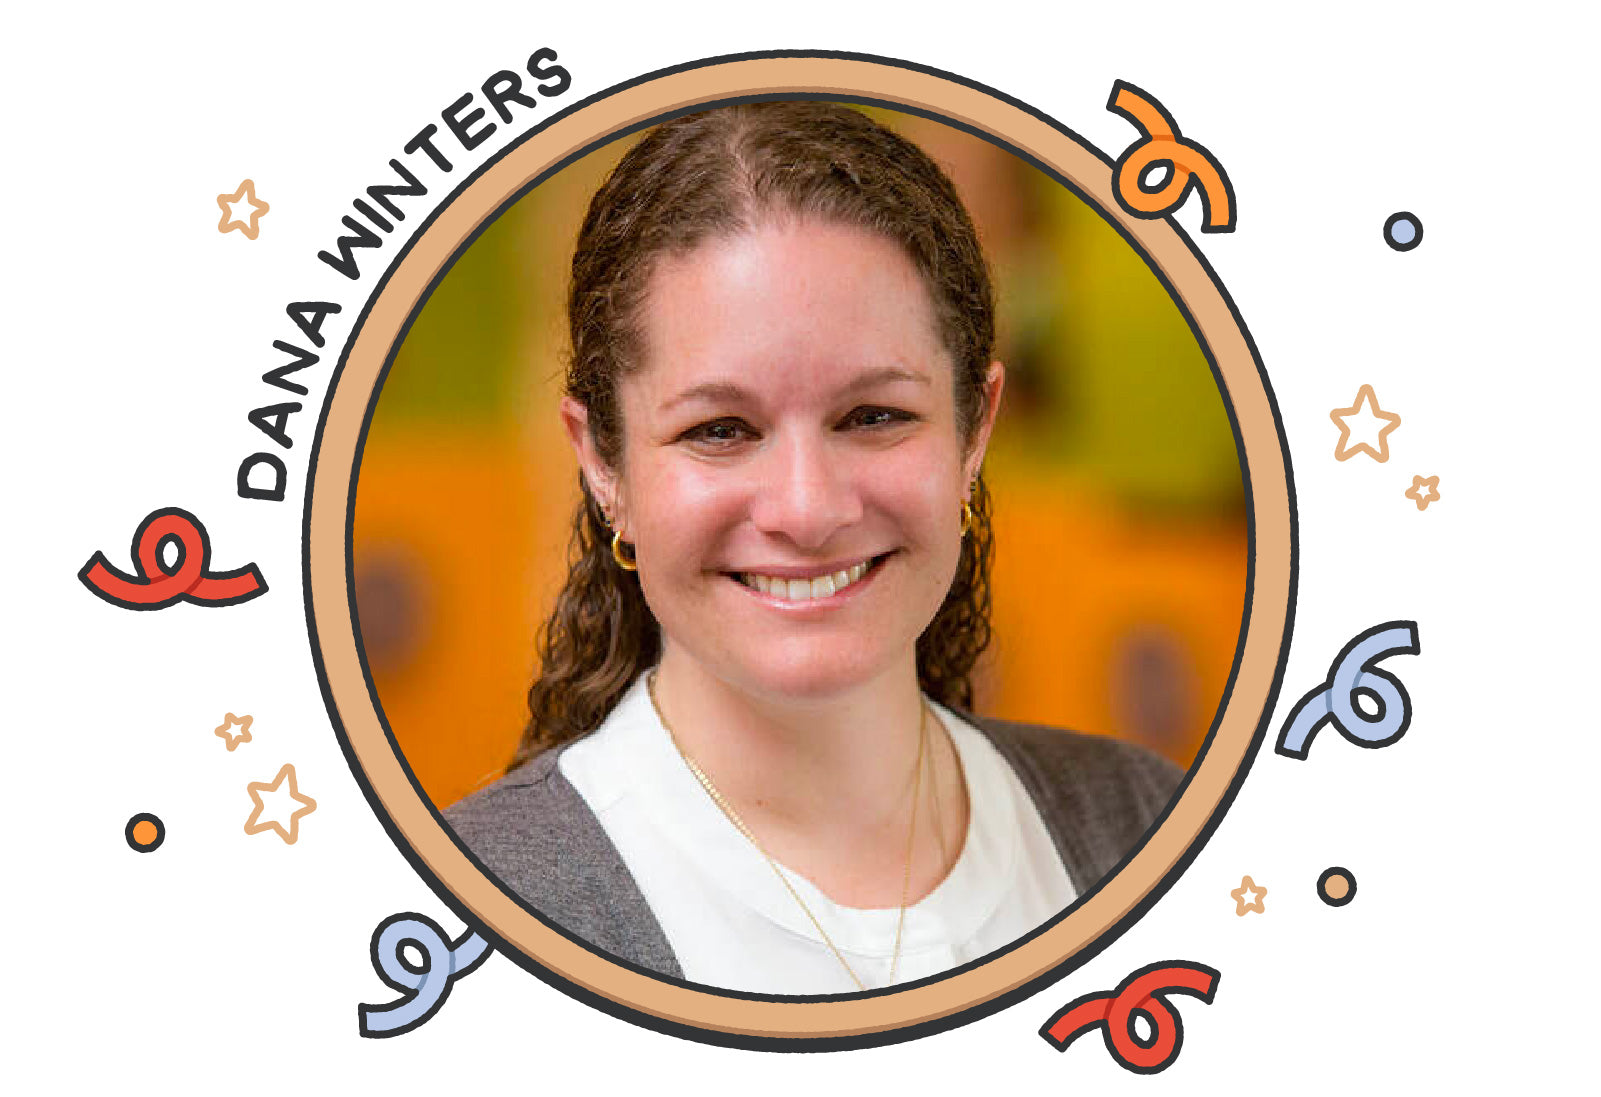 Headshot of Dana Winters, PhD, framed in a circle with illustrated curlicues in various colors